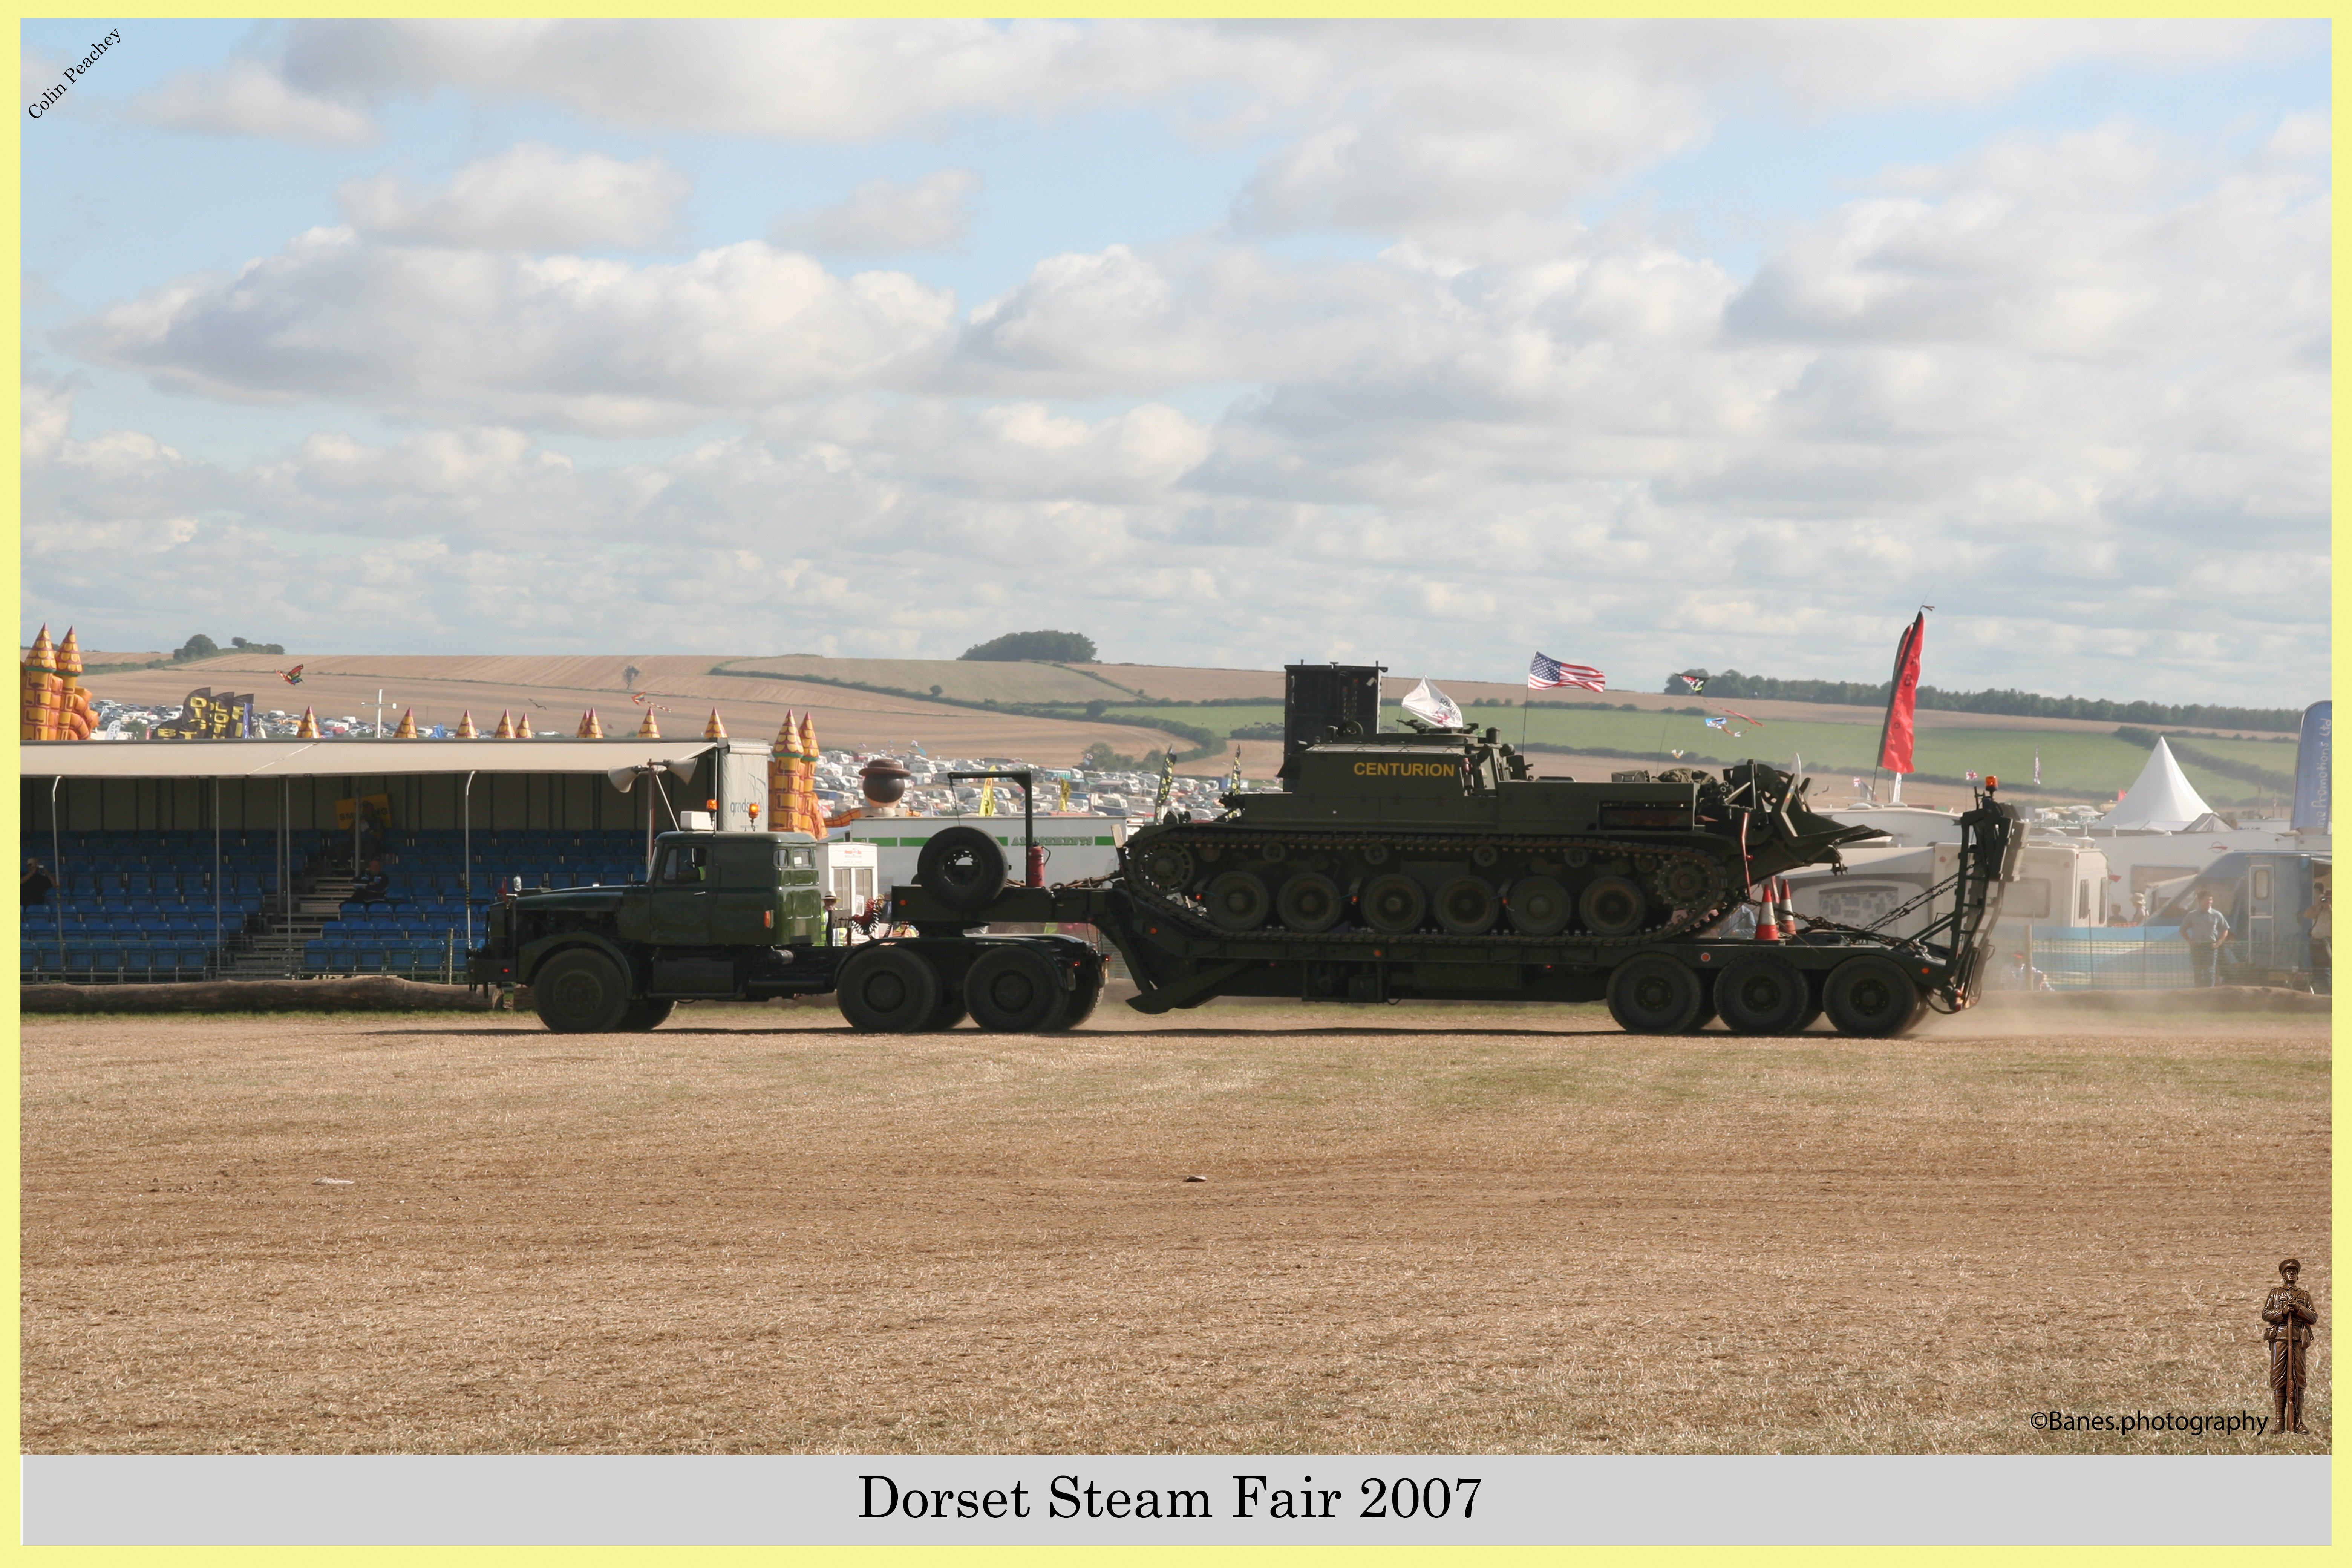 Dorset Steam Fair 2007, Blandford Forum 30-08-2007